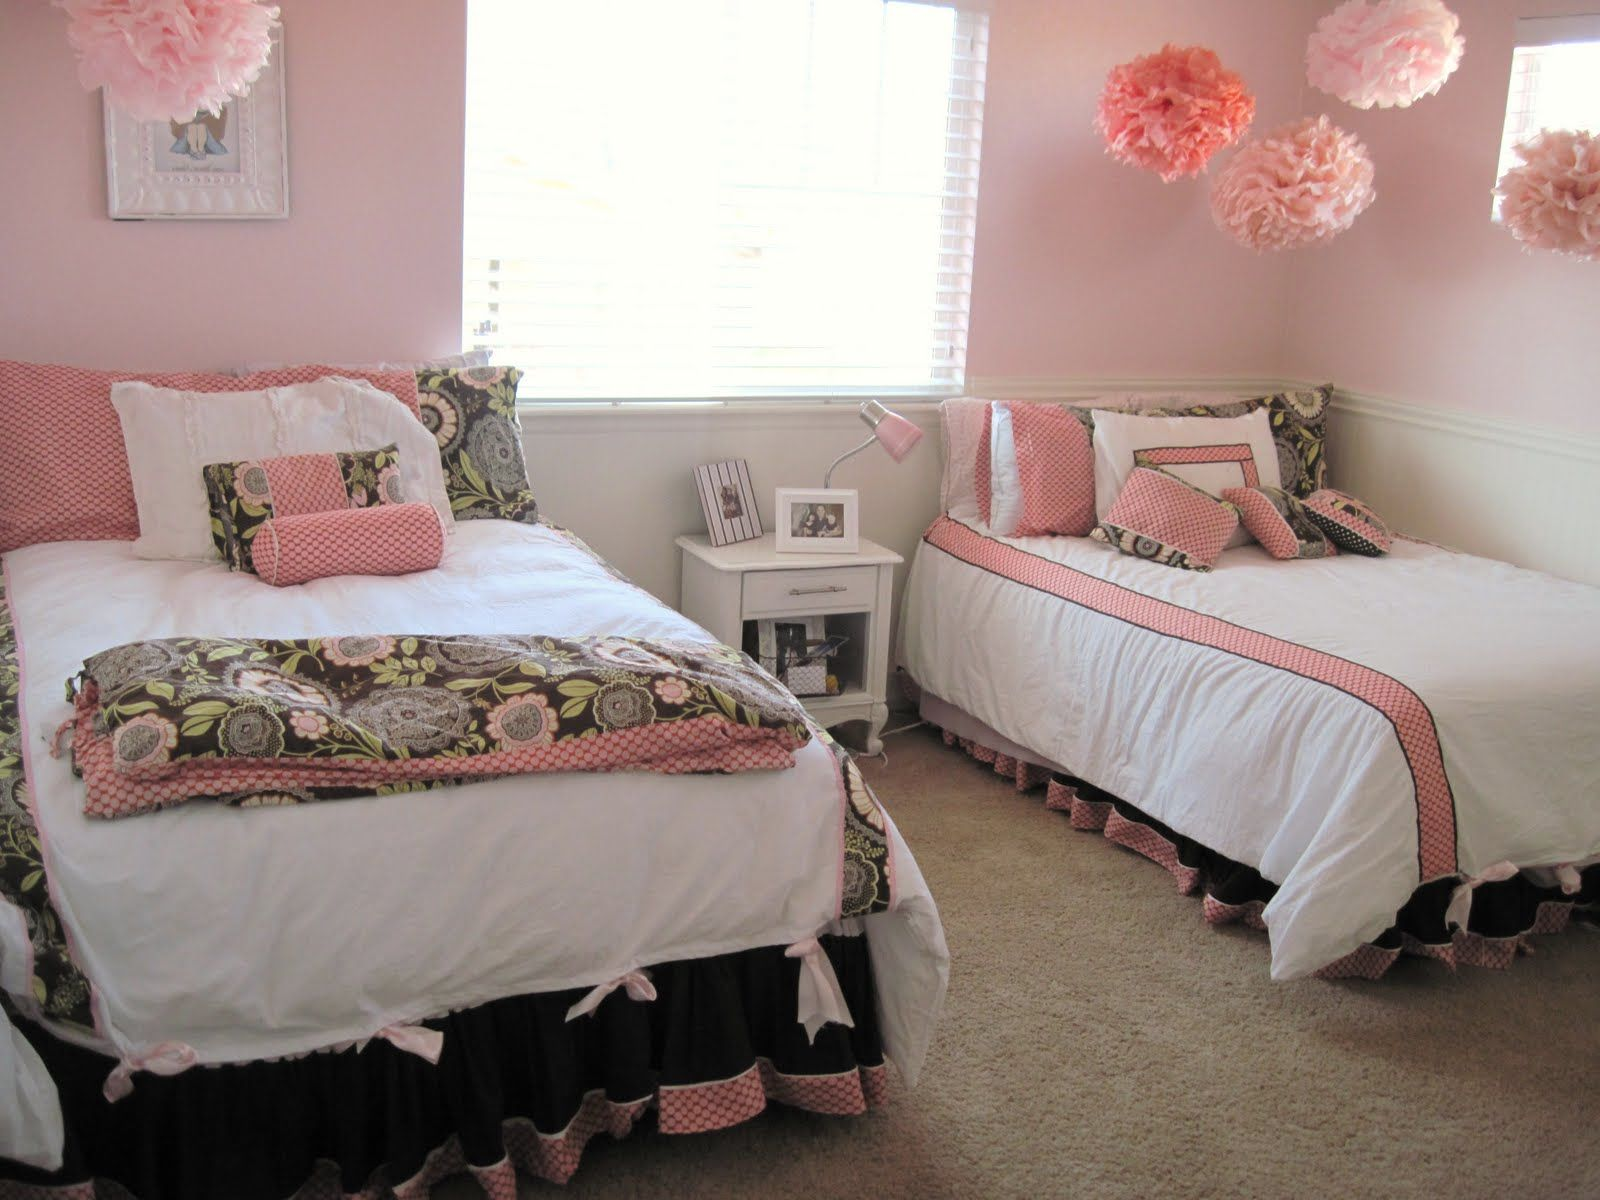 Dorm room ideas for girls two beds - Find This Pin And More On Room Decor Ideas 3 Pink Dorm Room Ideas For Girls Two Beds